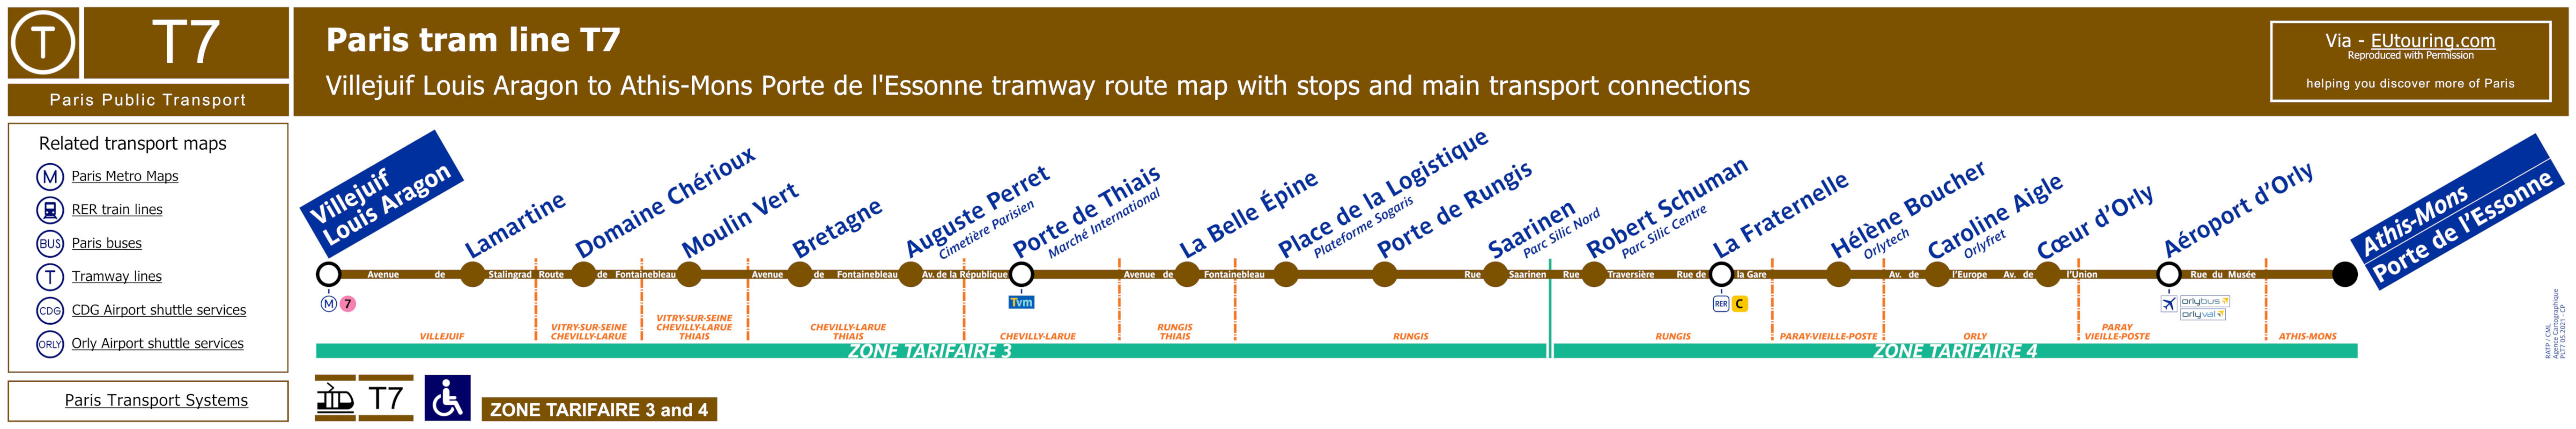 Paris Tram Maps And Timetables For Sncf And Rapt City Tramways 2020